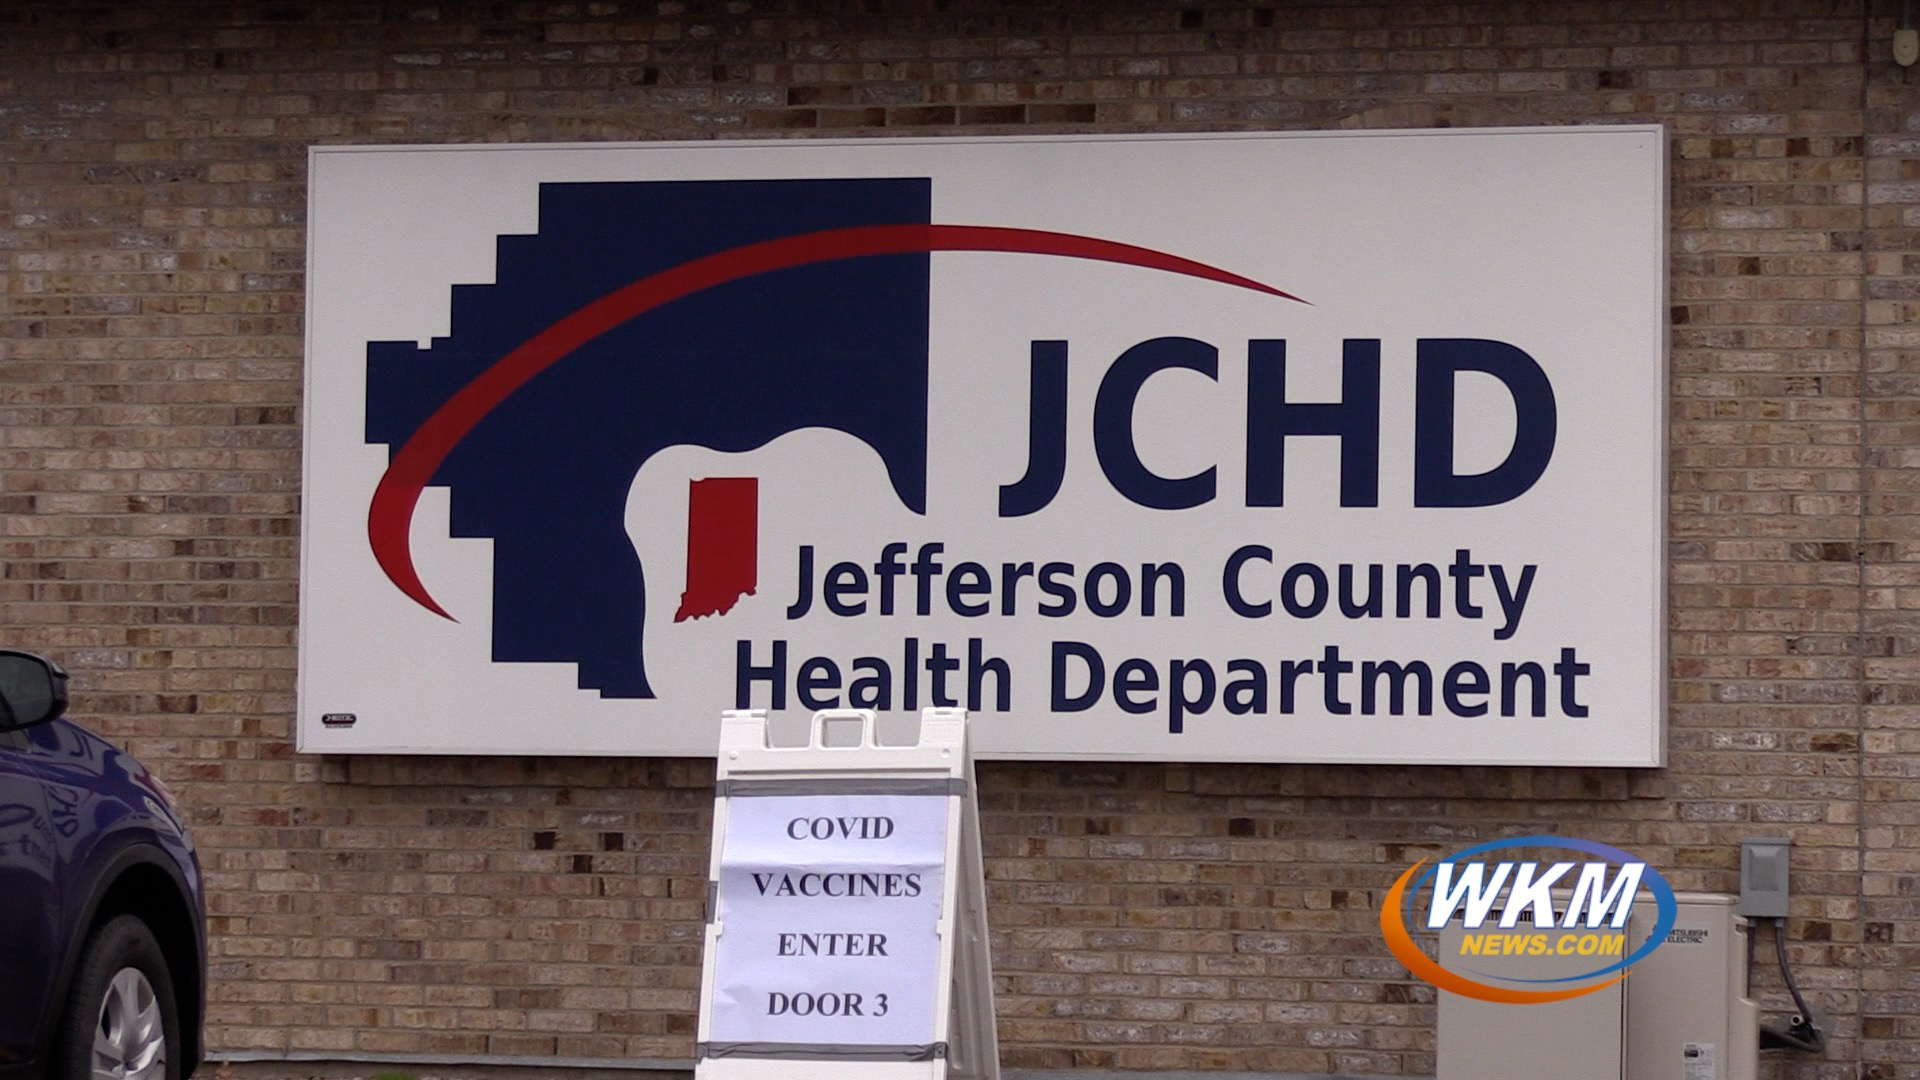 COVID-19 Vaccine Update From Jefferson County's Health Department